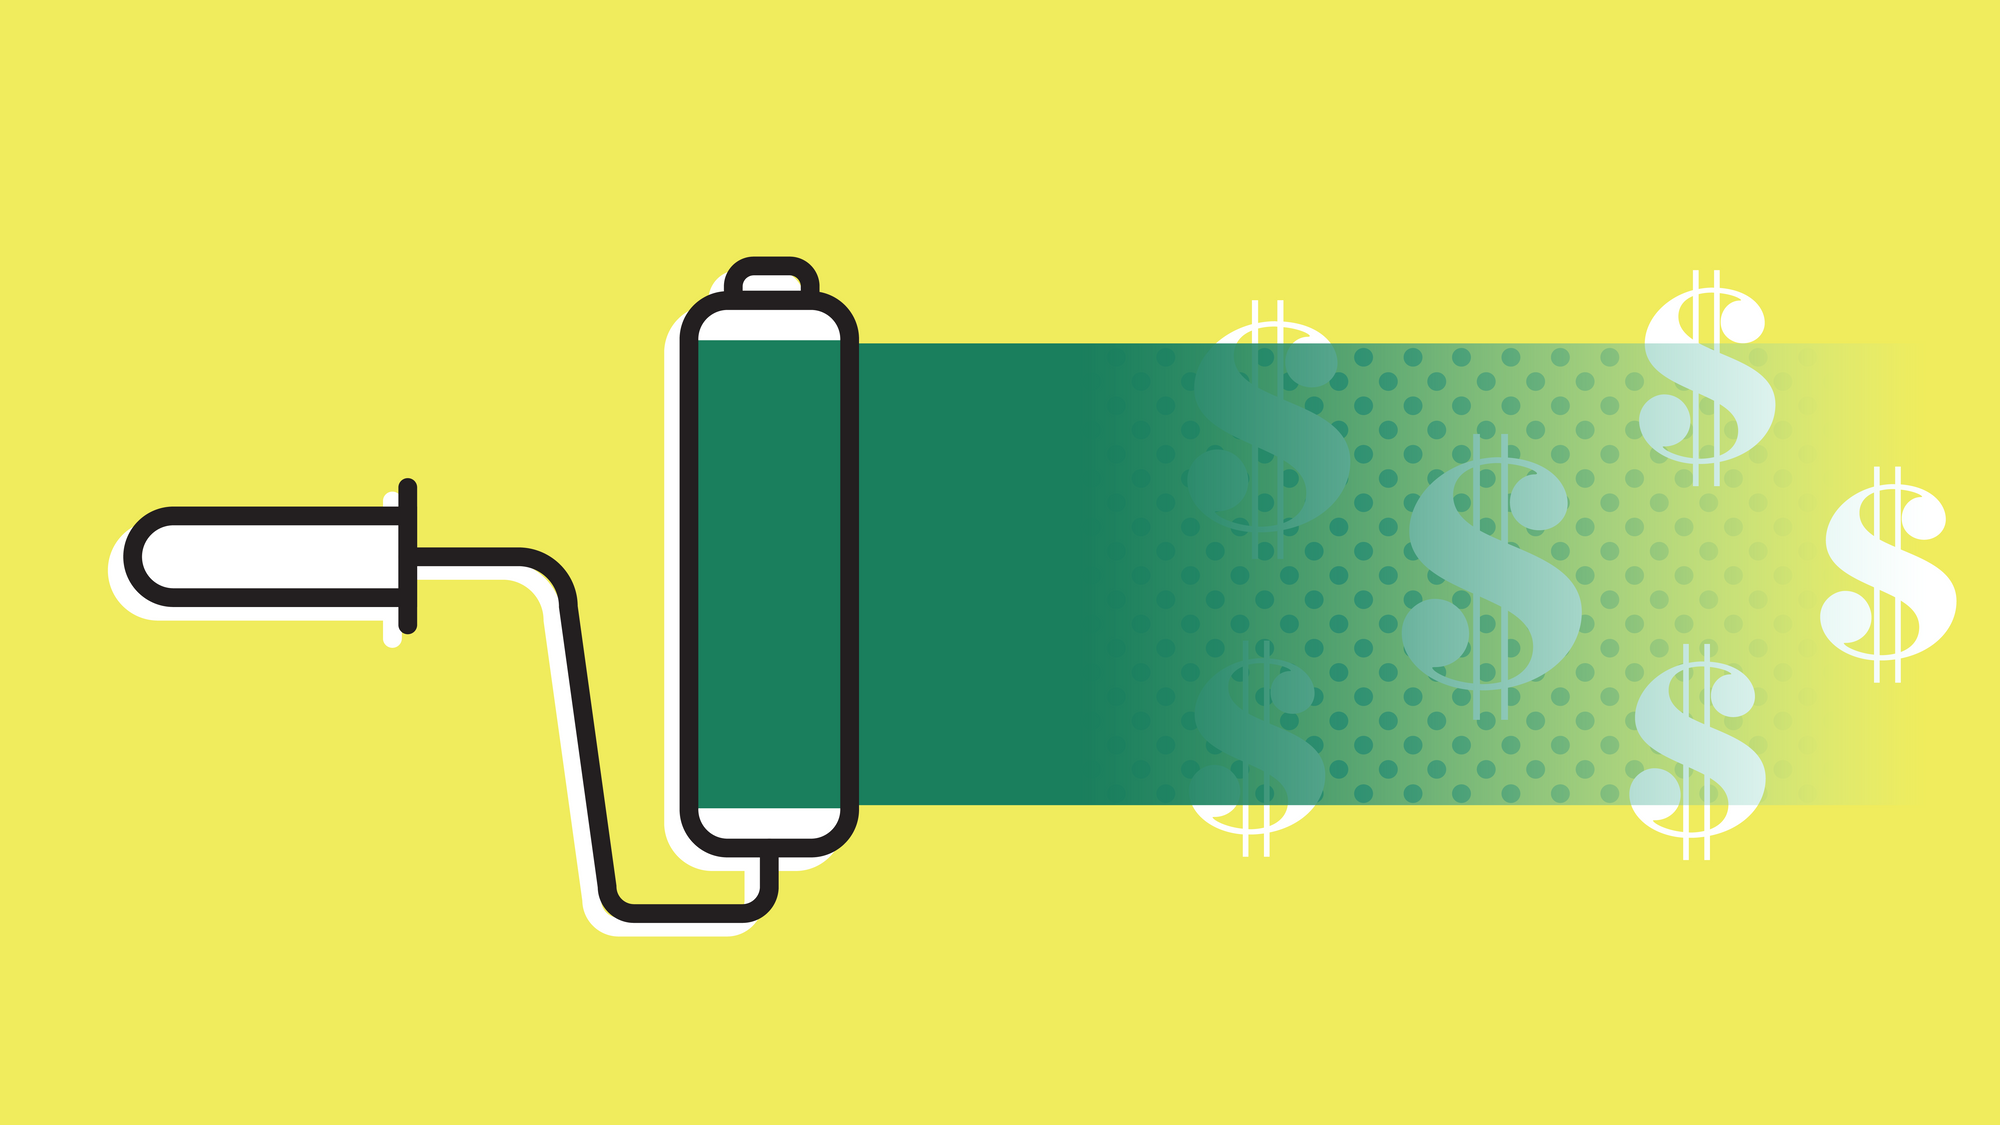 A yellow background and a paint roller painting green paint over dollar signs.